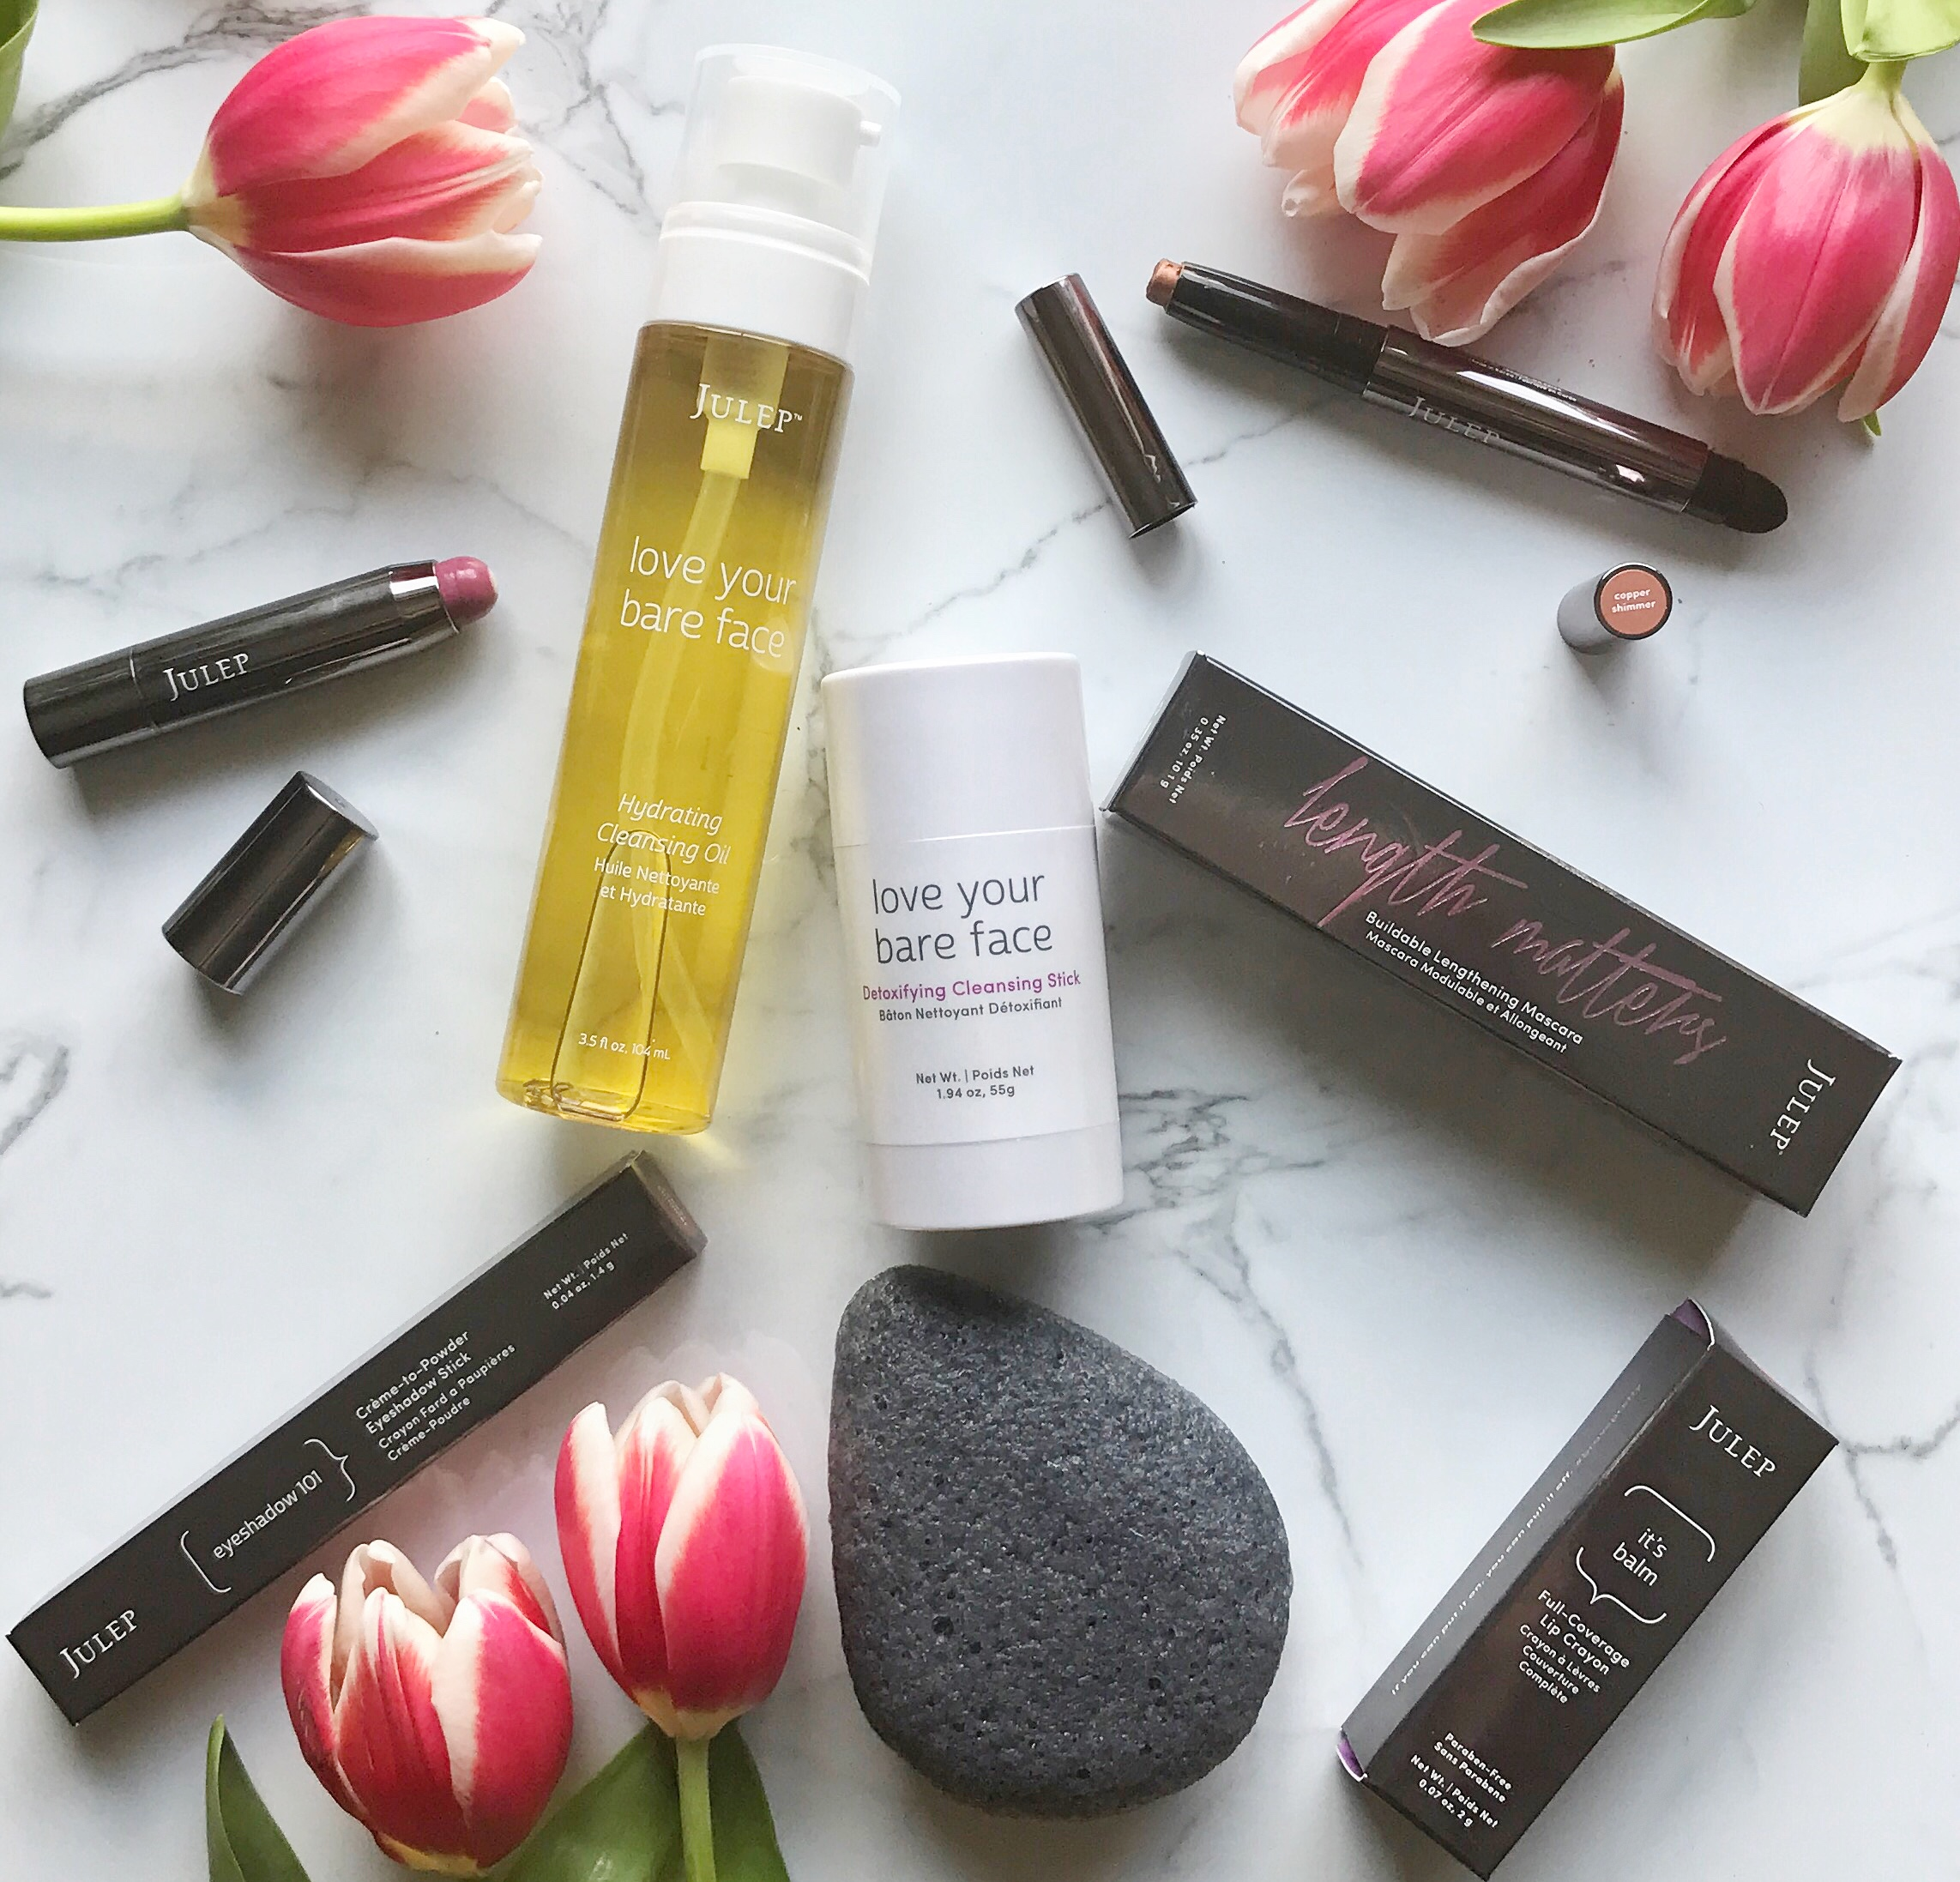 Love Your Bare Face Hydrating Cleansing Oil    //    Love Your Bare Face Detoxifying Cleansing Stick   //    Charcoal Konjac Sponge    //   Lip Crayon    //    Mascara    //    Eyeshadow Stick